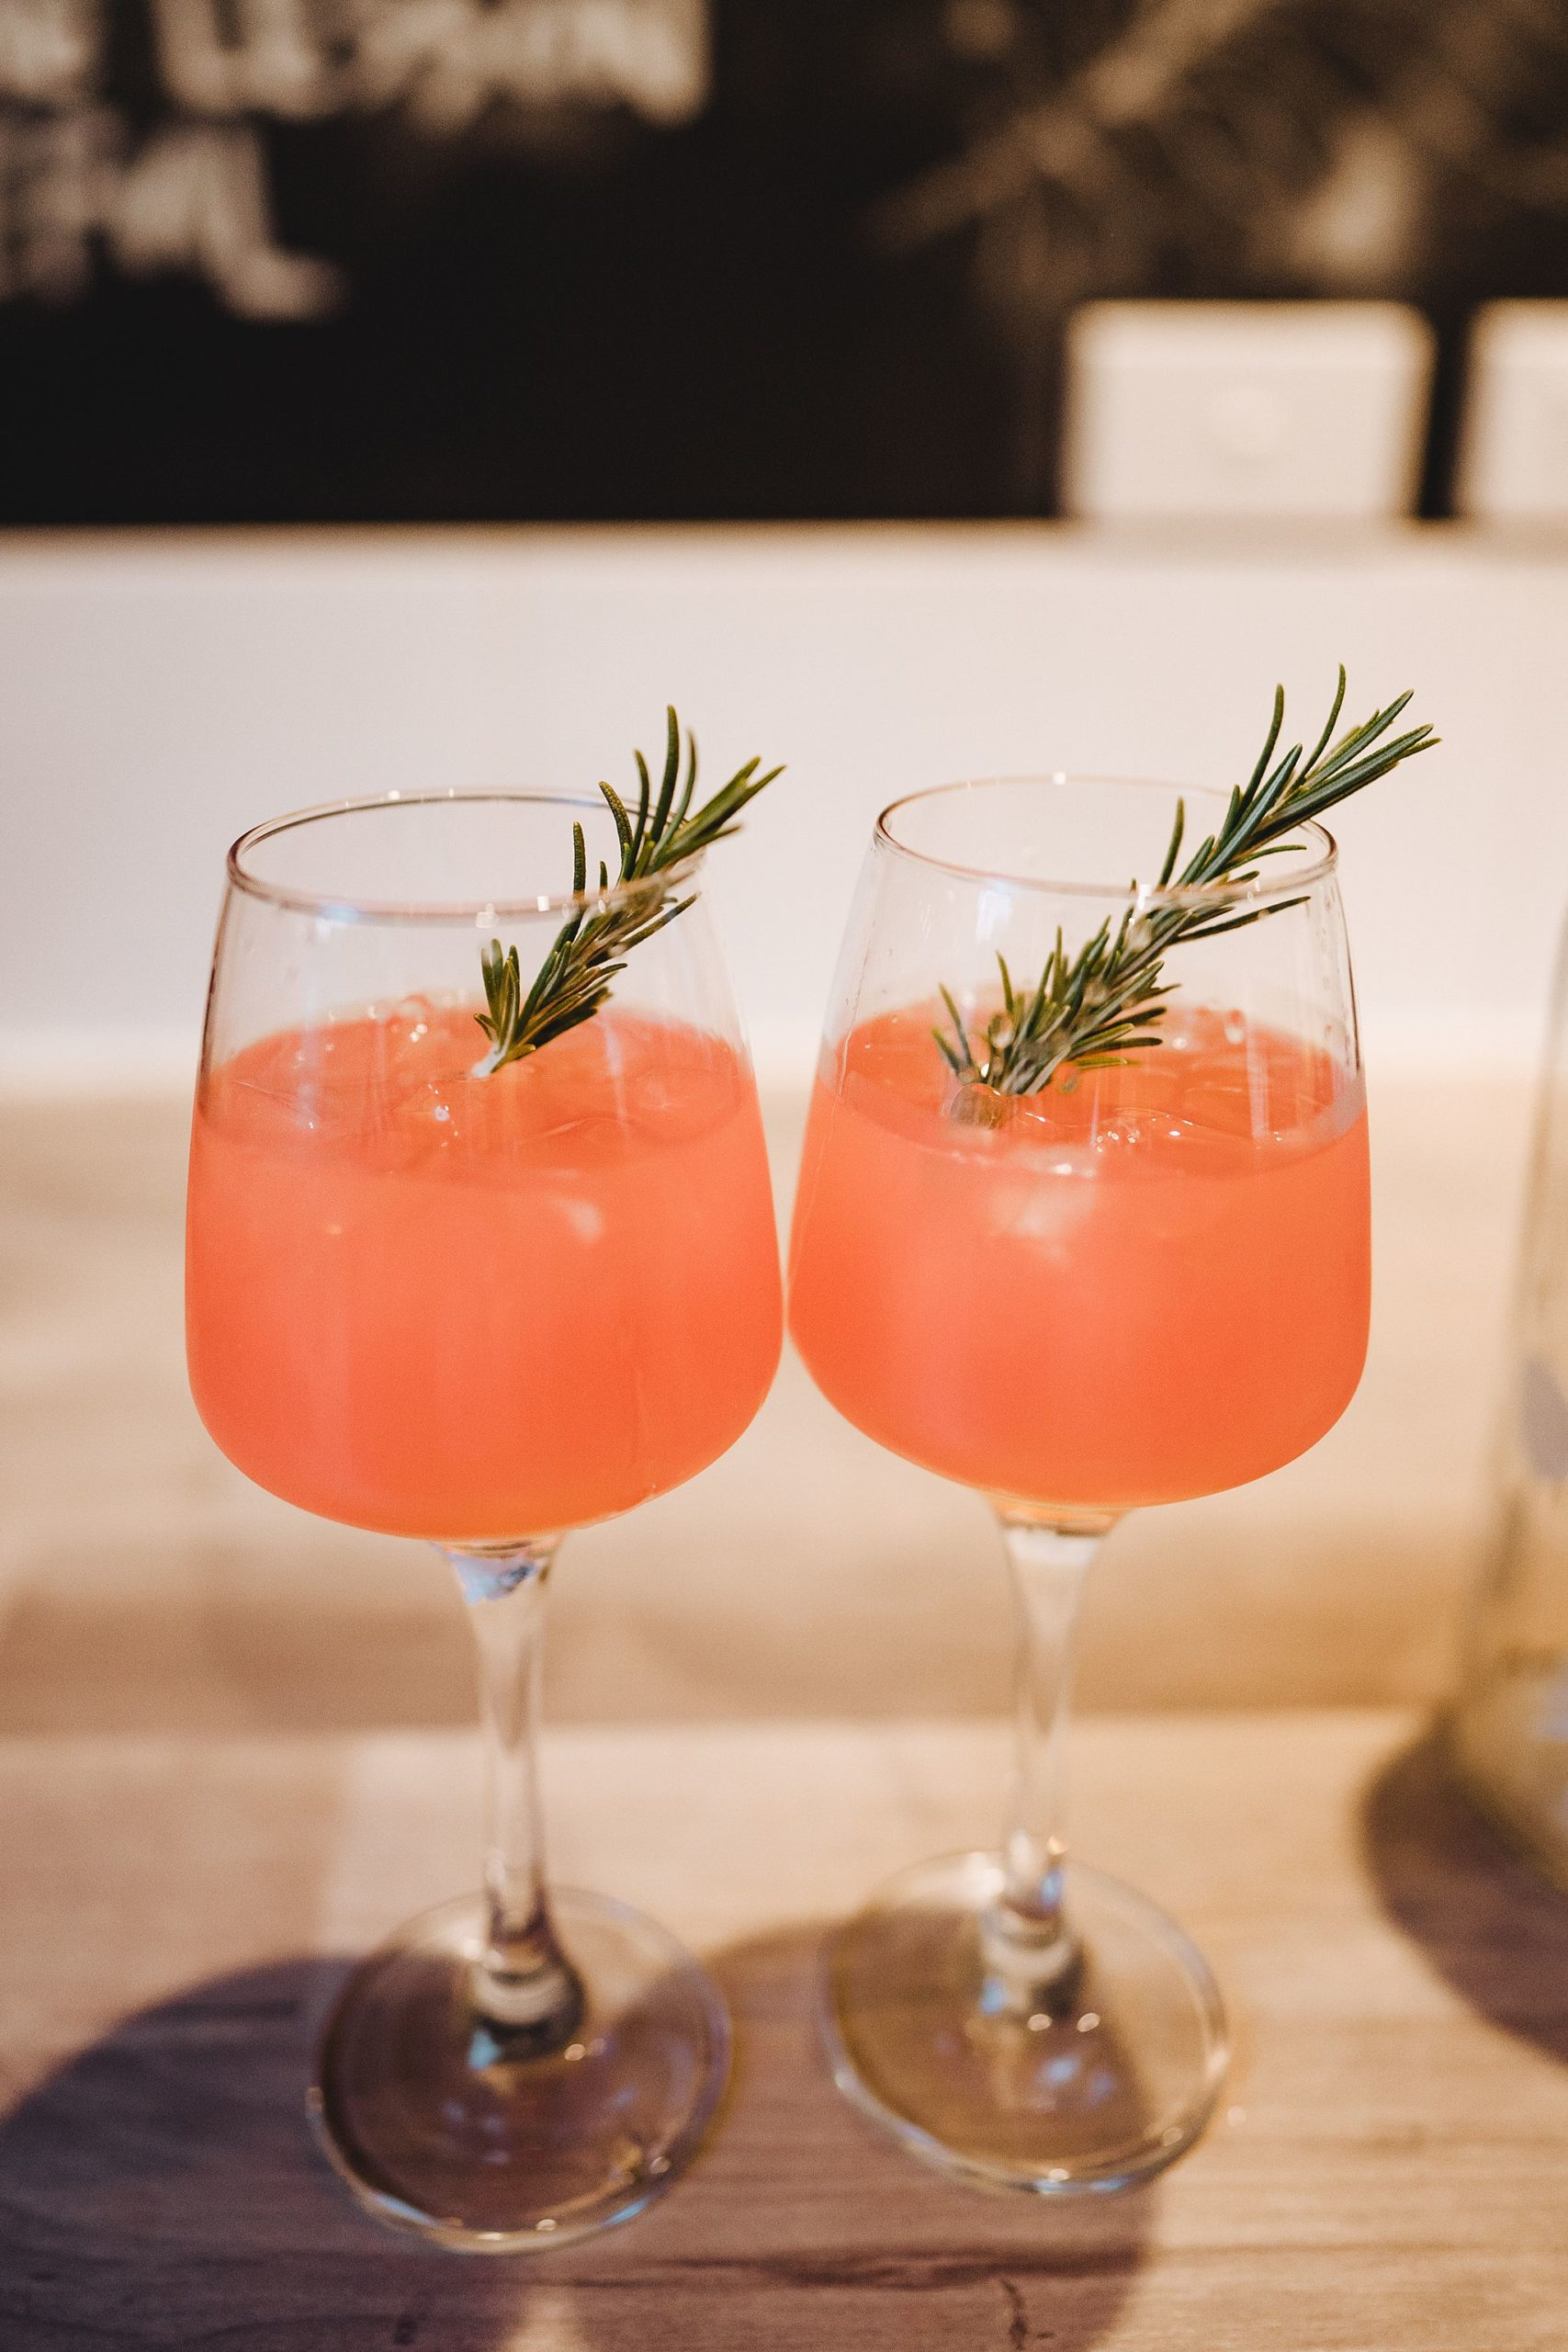 Vodka grapefruit juice and rosemary infused cocktail with fresh rosemary garnish